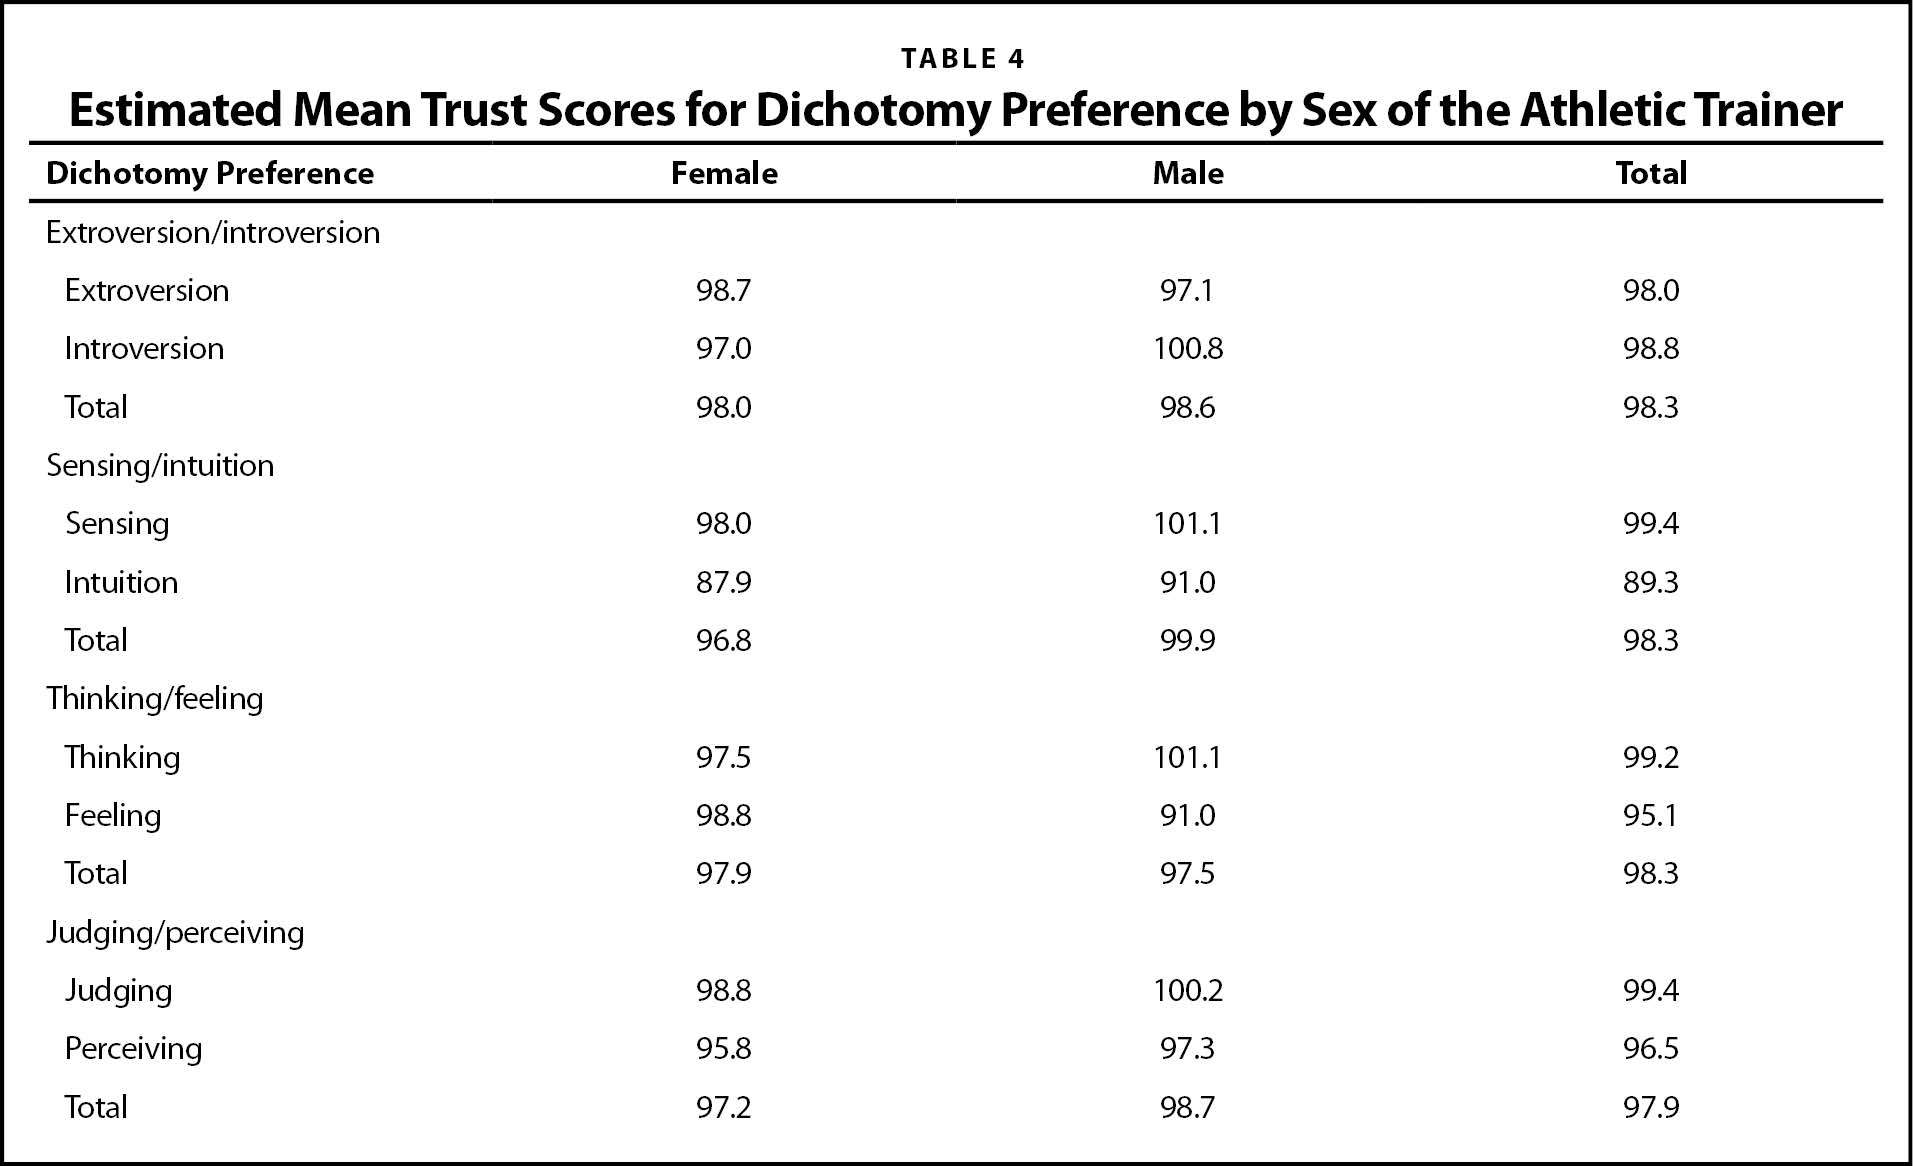 Estimated Mean Trust Scores for Dichotomy Preference by Sex of the Athletic Trainer